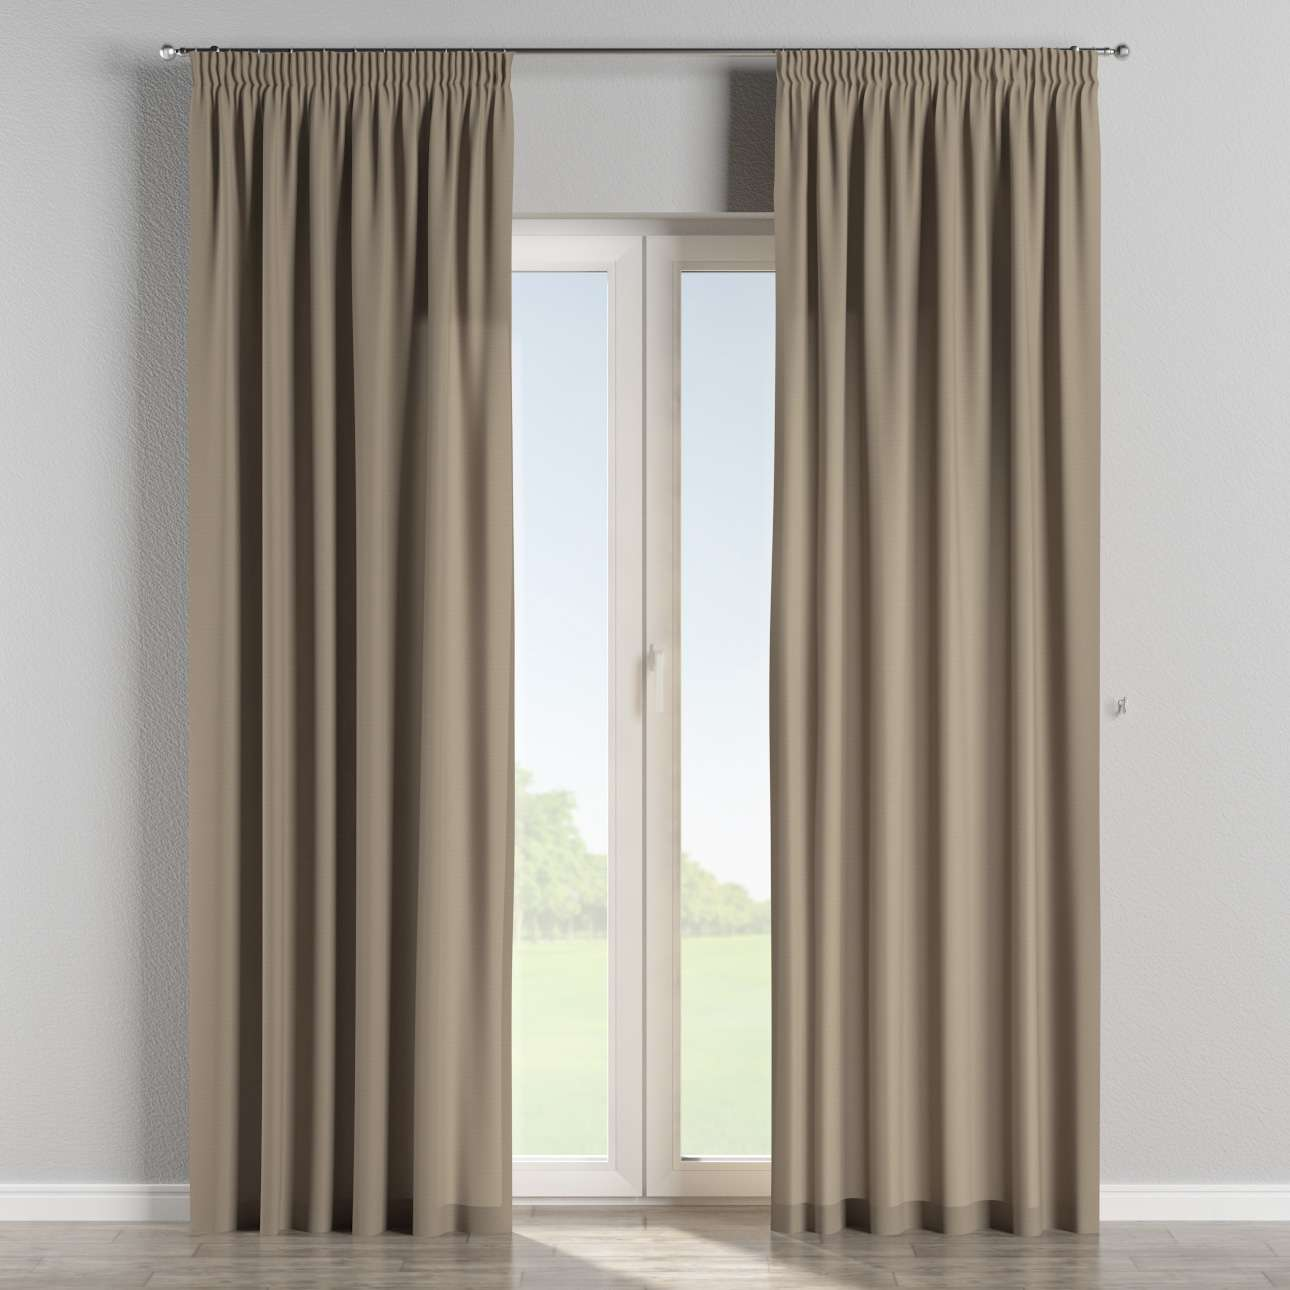 Pencil pleat curtains 130 x 260 cm (51 x 102 inch) in collection Cotton Panama, fabric: 702-28